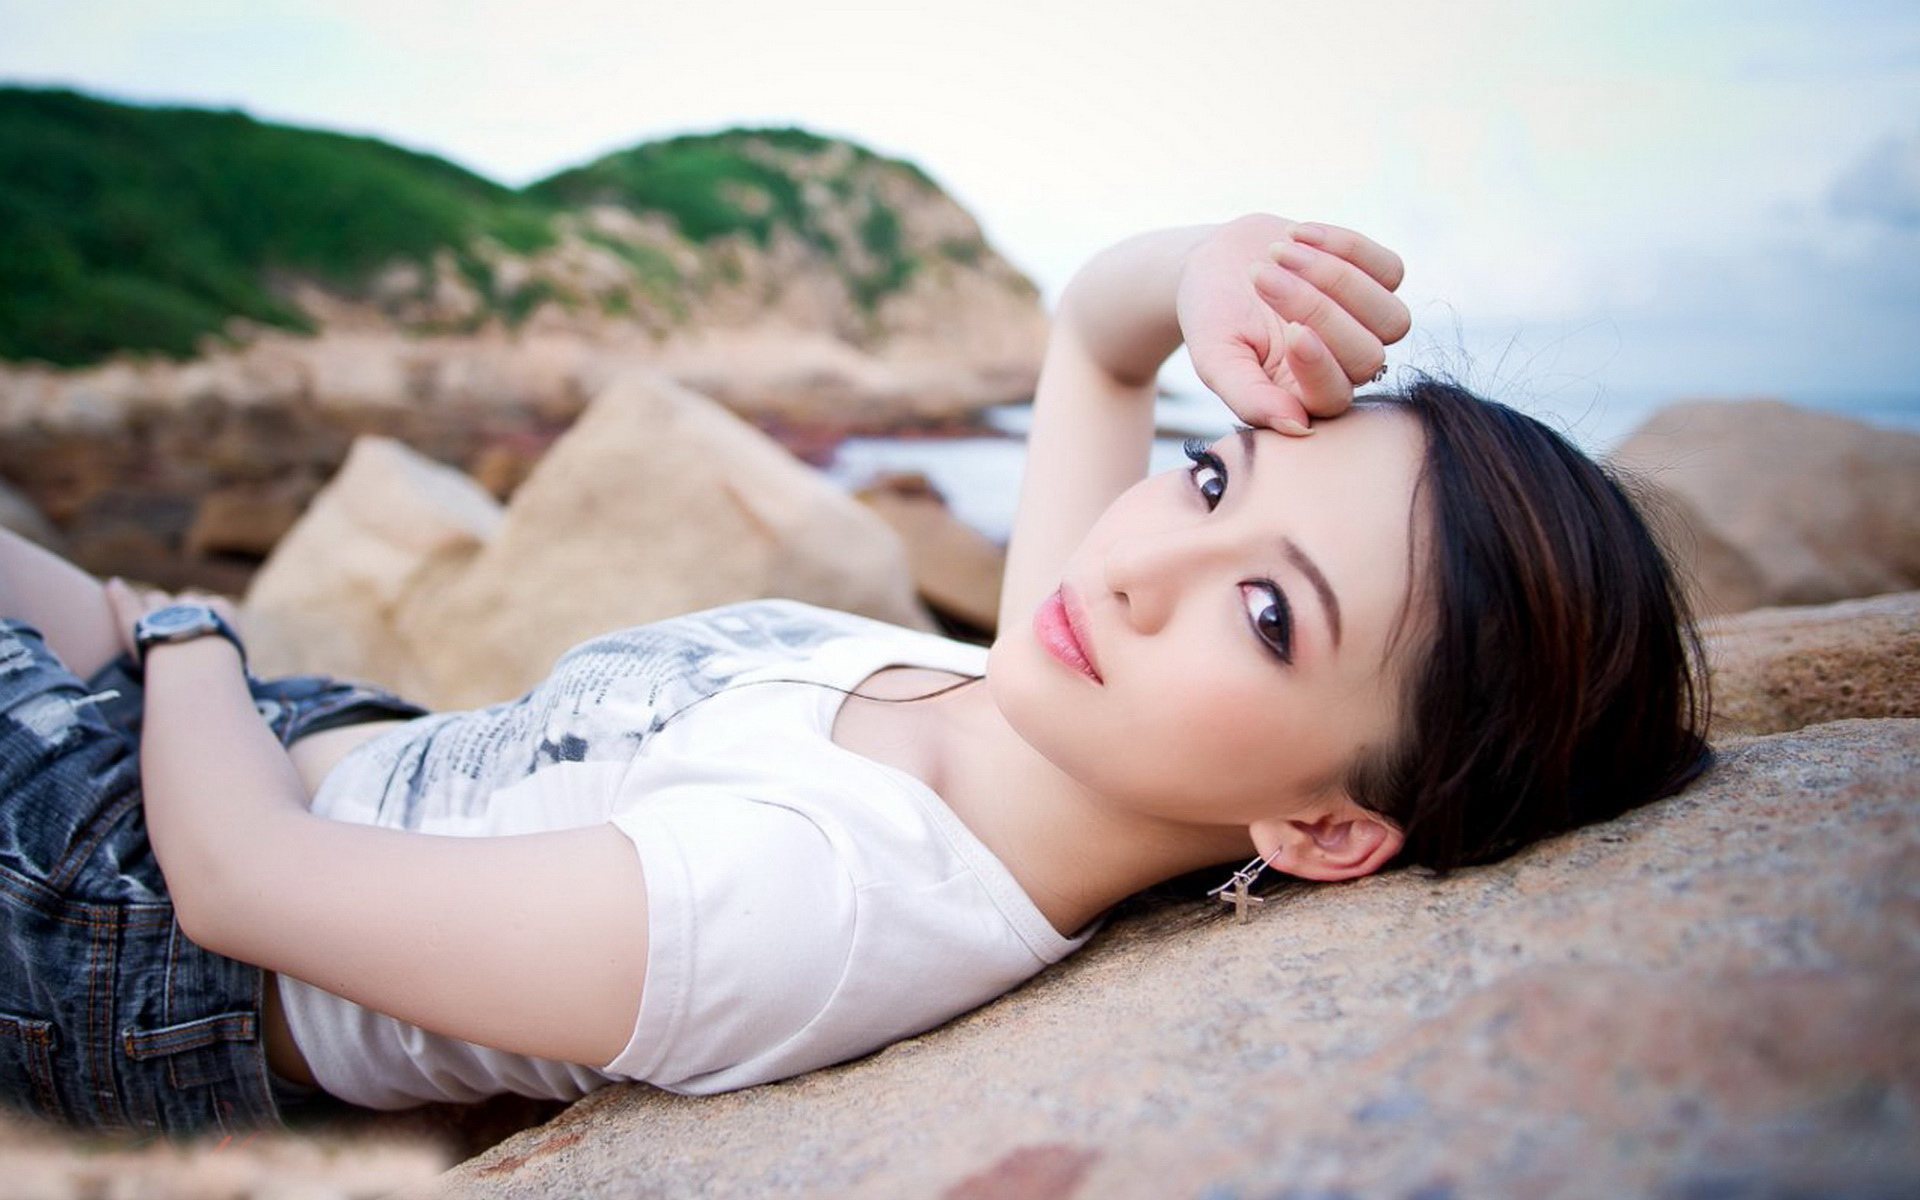 Beauty In Neat Hair And Big Shinning Eyes Lying On Beach It Must Be A Clean And Comfortable Place Hd Attractive Girls Wallpaper Free Wallpaper World